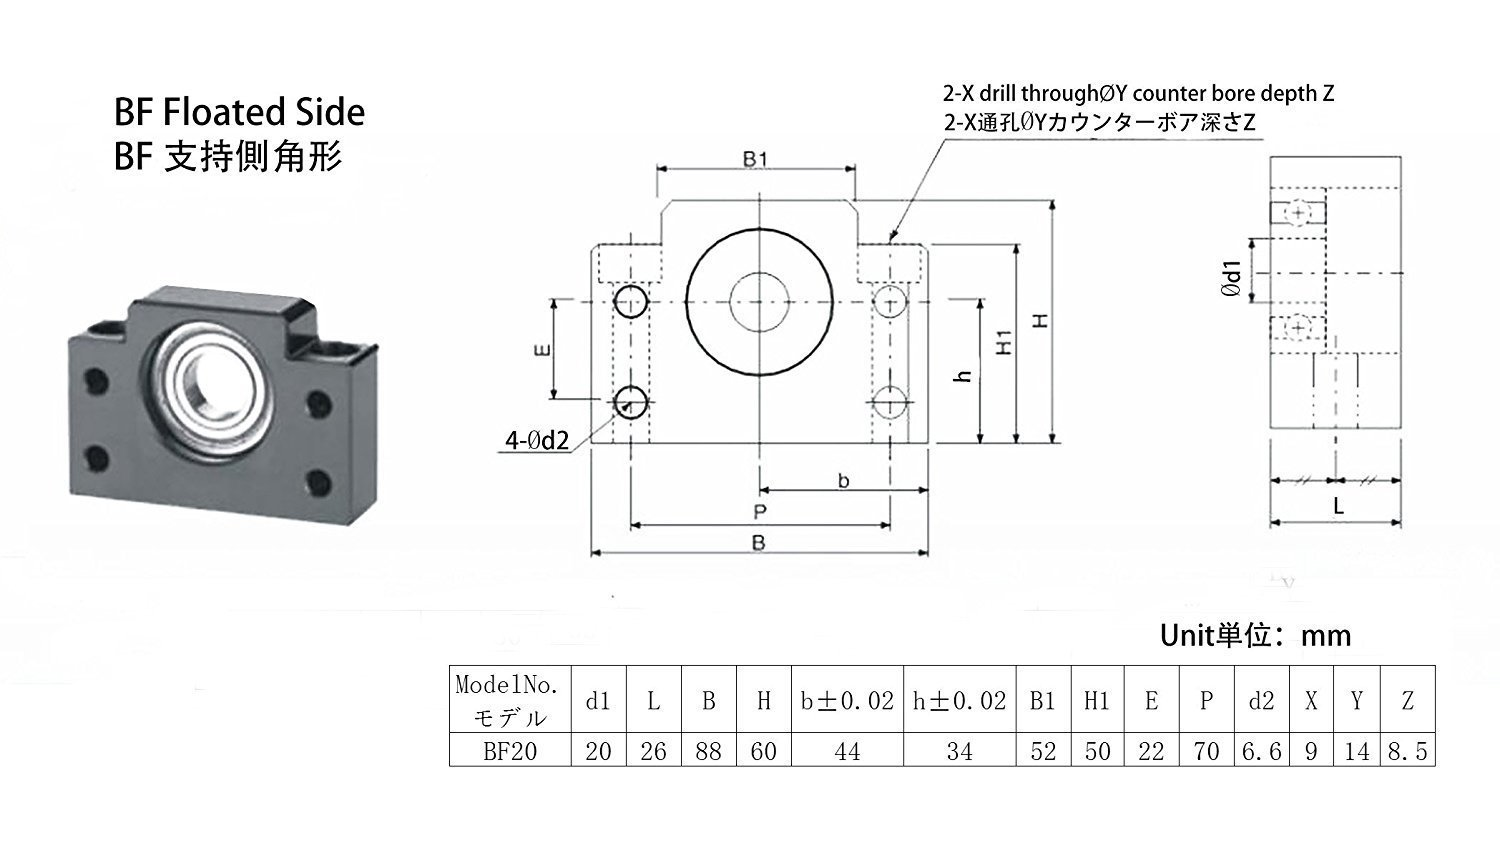 Ten High Ballscrew Lead Screw Cnc Parts Kits Sfe2525 Rm2525 0 60 Counter Circuit Diagram 25mm 1900mm With Metal Deflector Nut Bk Bf20 End Supports Ball Housings 1pcs